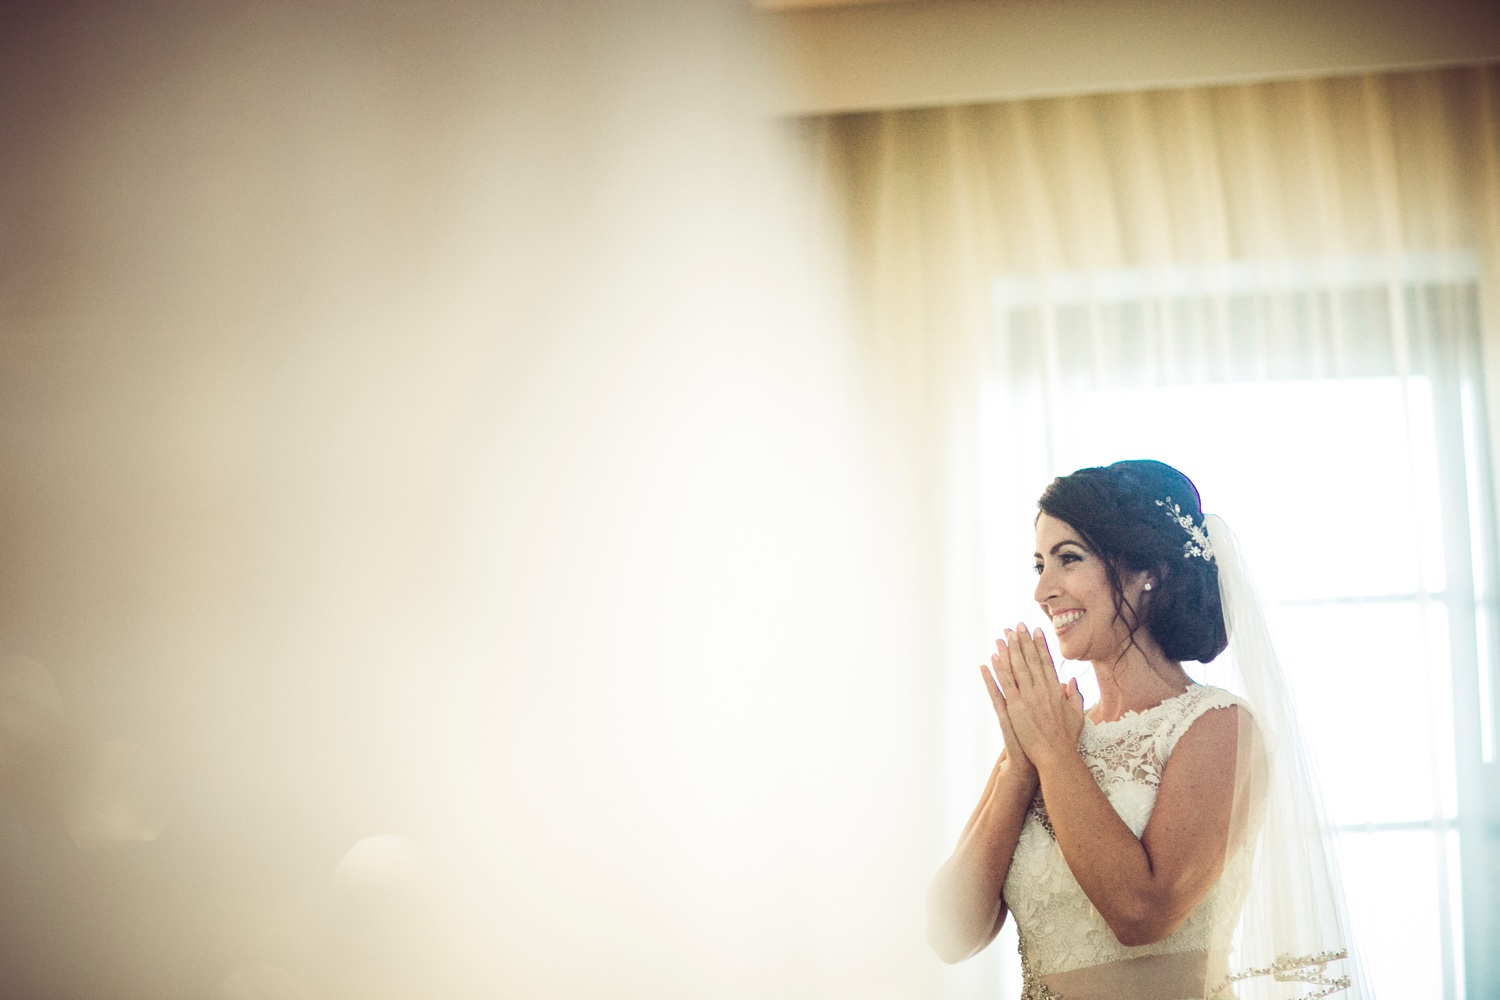 001-2014-2015_top30_by_orlando_wedding_photographer_brianadamsphoto.com.jpg